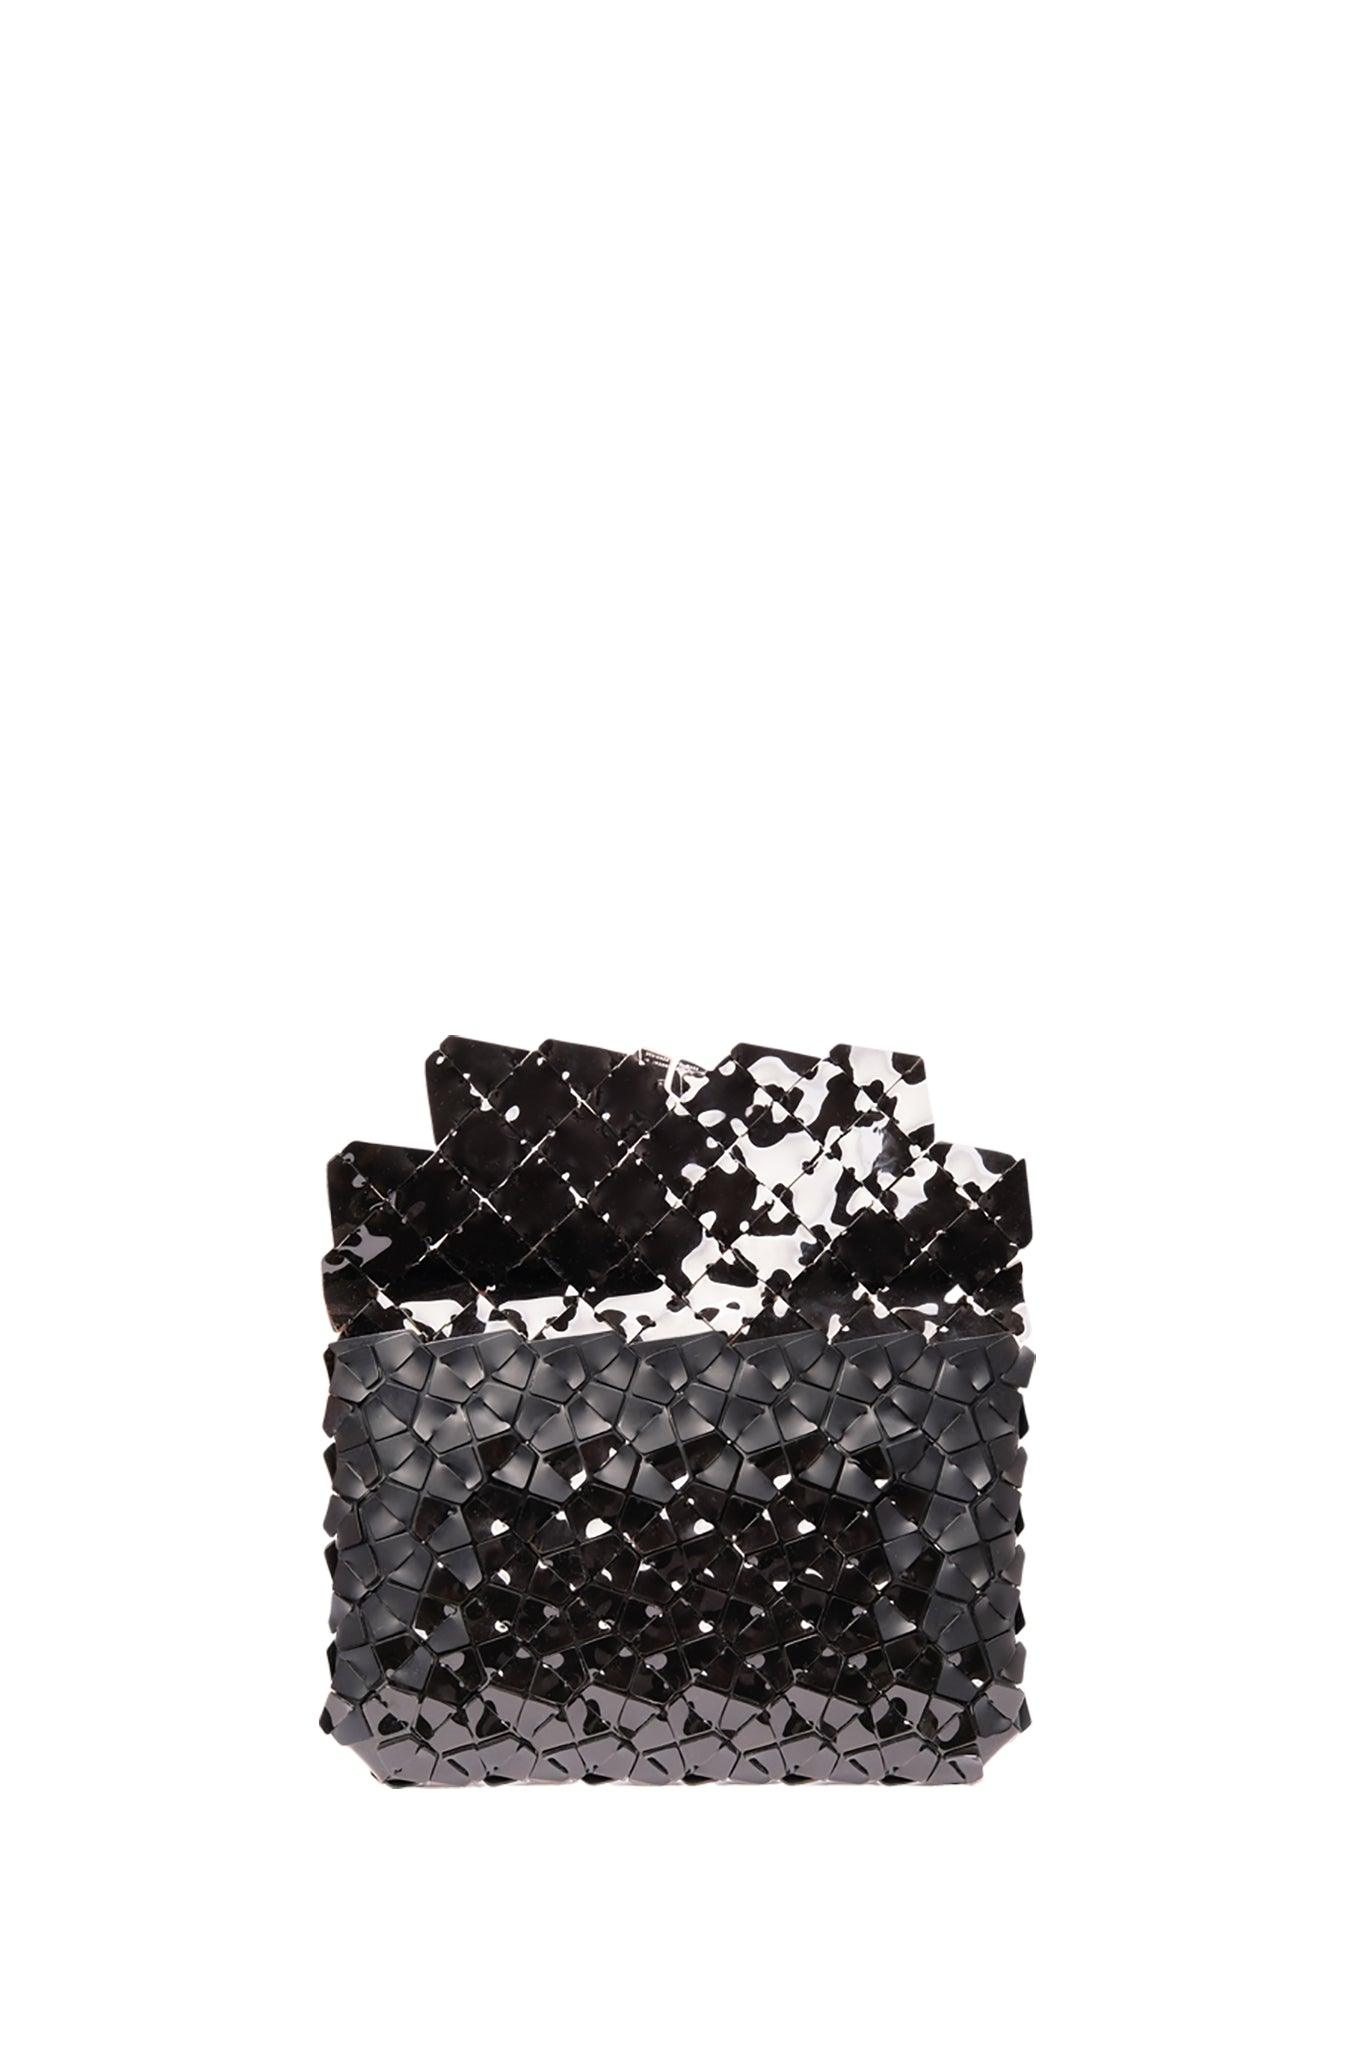 Medium Black Fragment Clutch